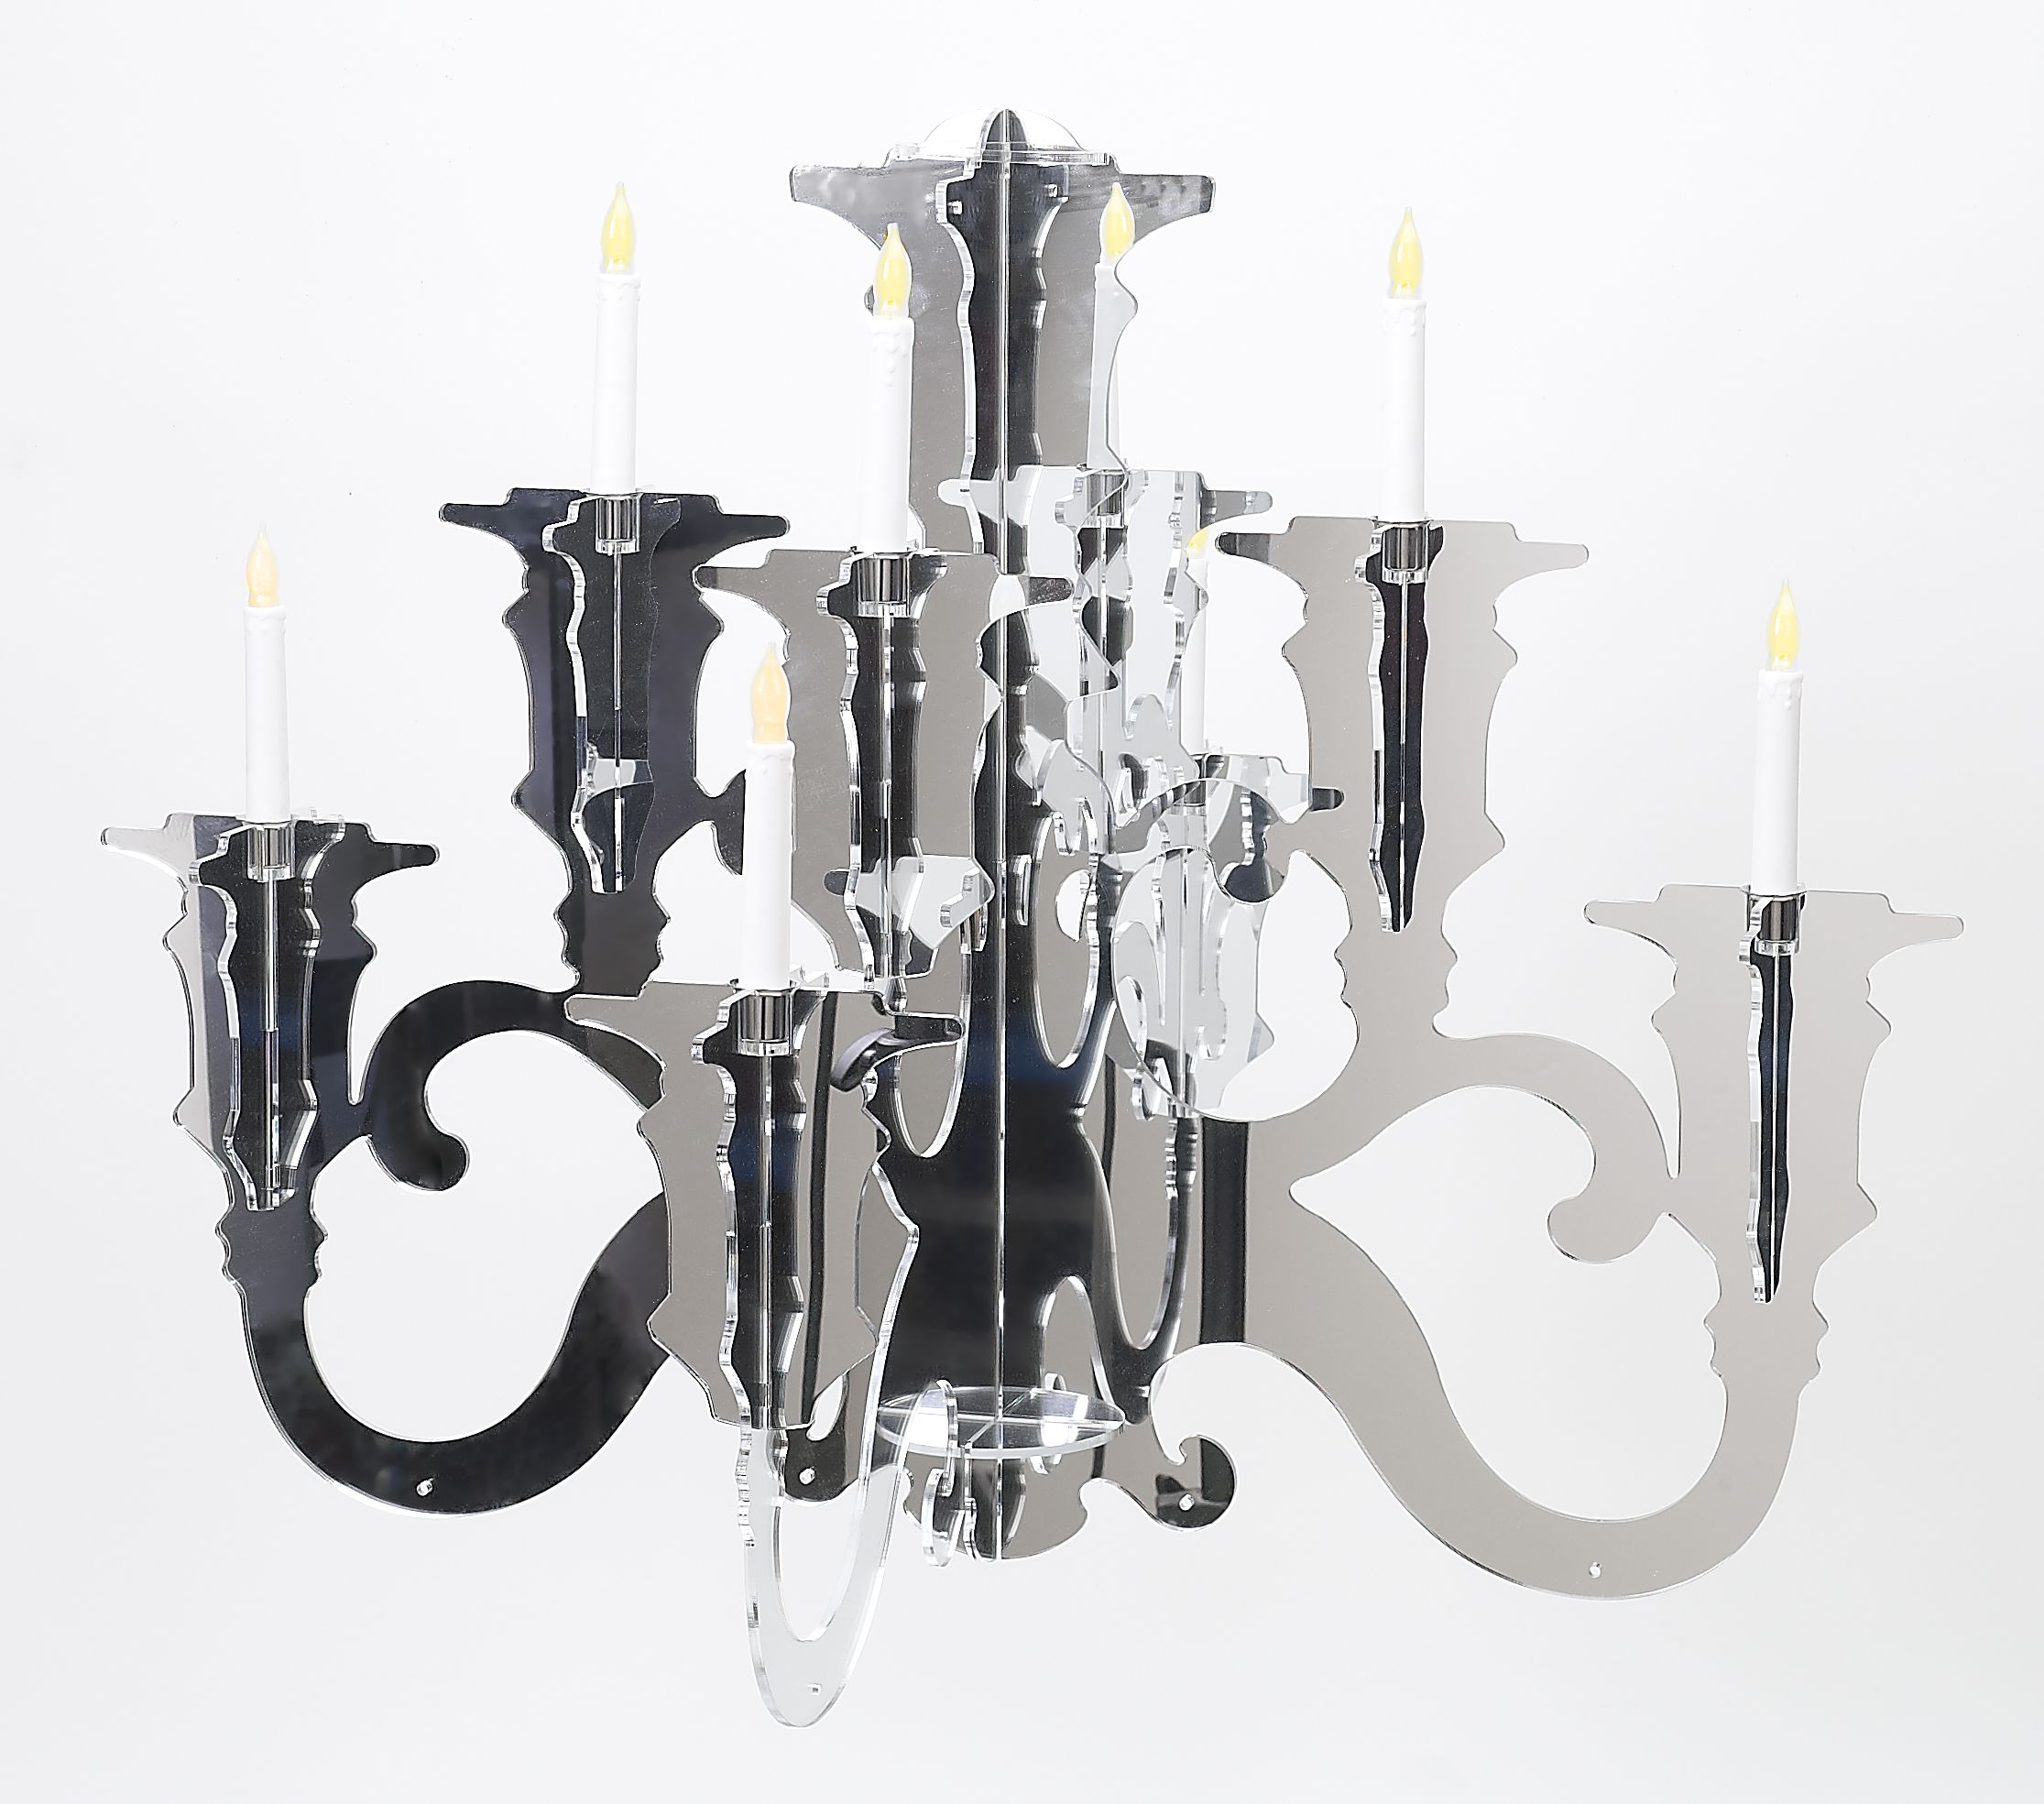 Baroque acrylic chandelier lig38 all acrylic baroque silhouette baroque acrylic chandelier lig38 all acrylic baroque silhouette five light chandelier available in clear arubaitofo Image collections